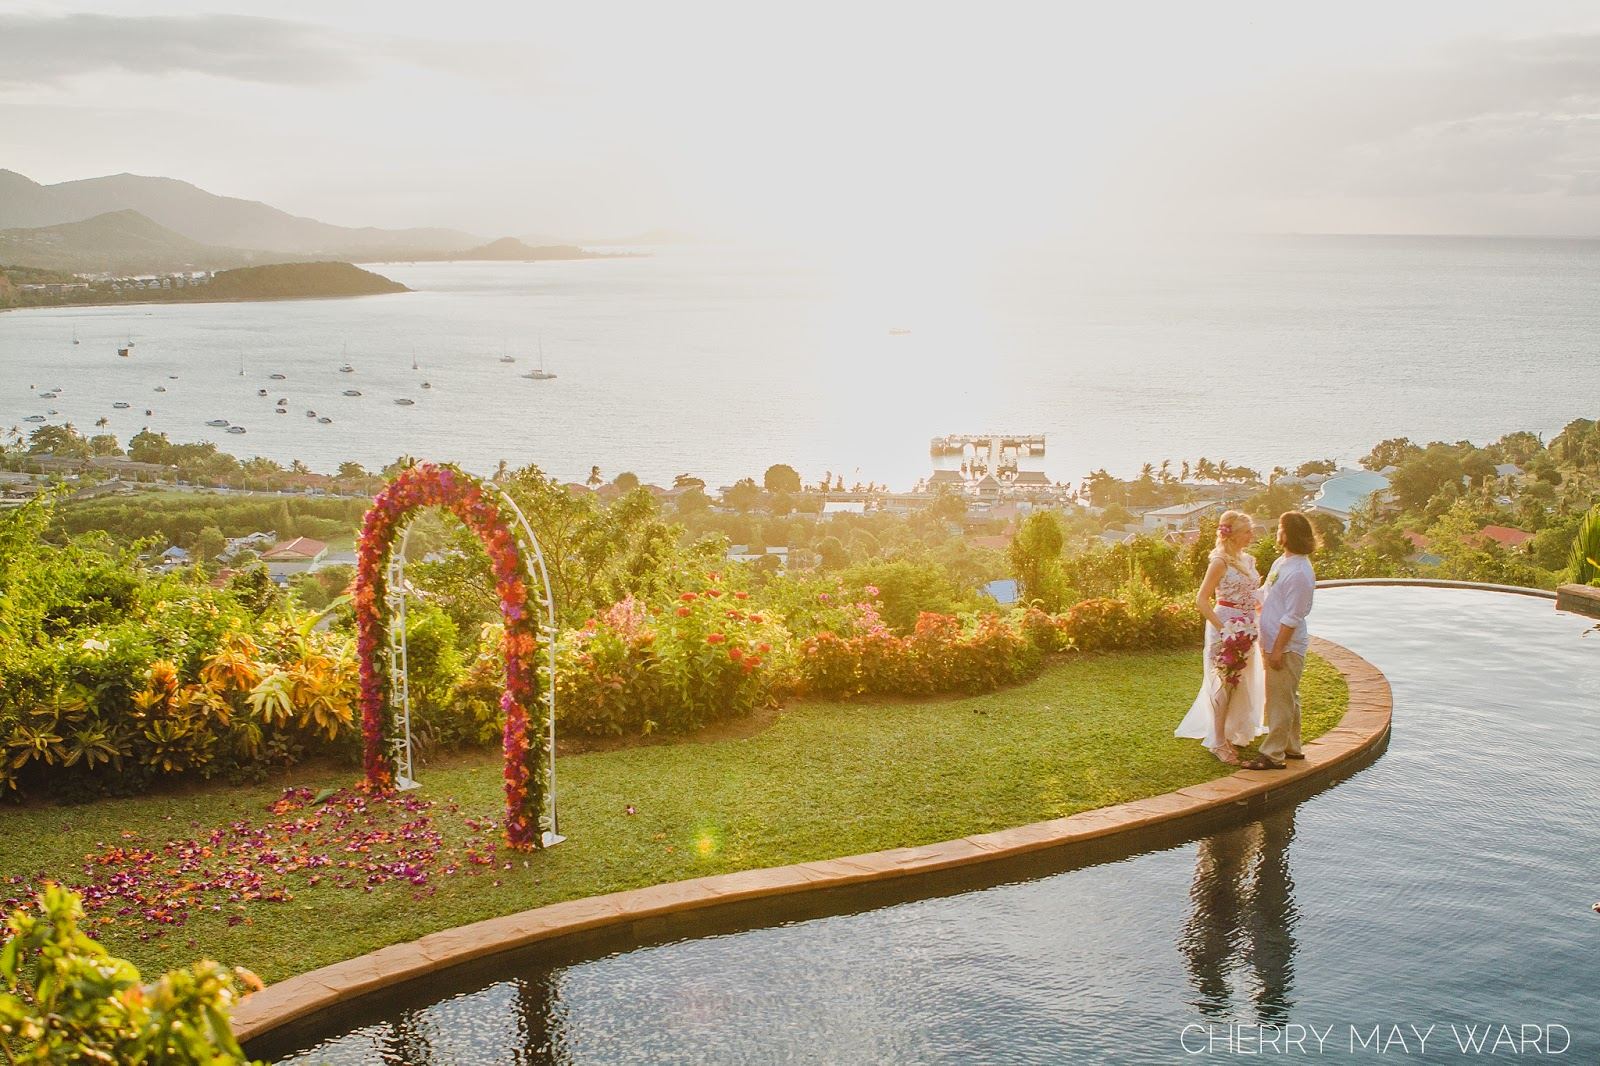 Thailand villa wedding with the most beautiful view, view over the water, sunset view from private villa, wedding on to of a hill with sunset view on Koh Samui